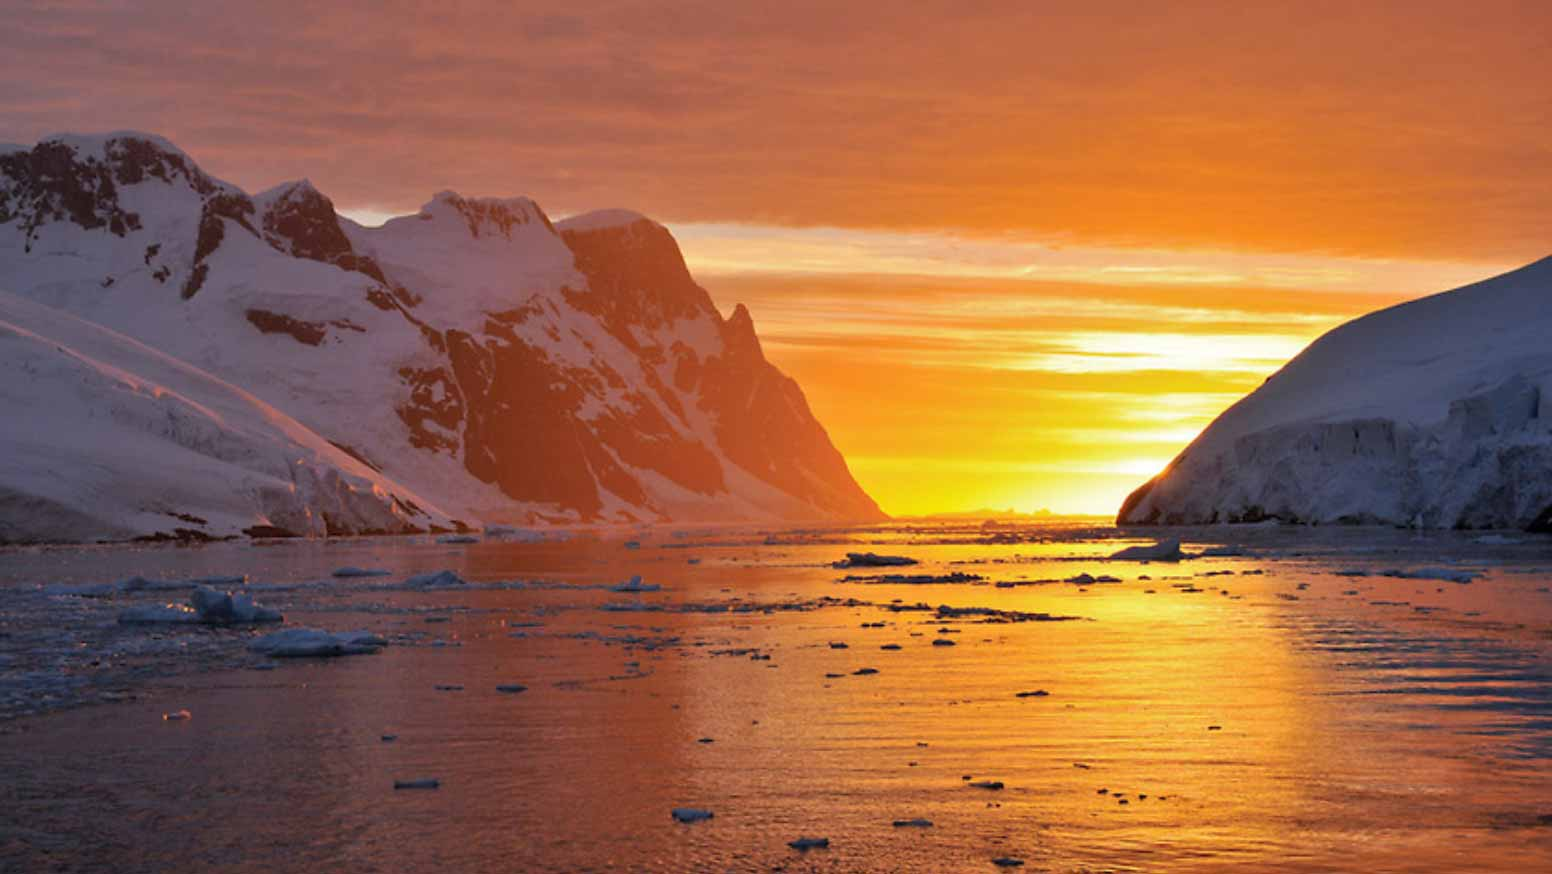 THE SILVERSEA SILVER CLOUD MAKES ITS INAUGURAL EXPEDITION TO ANTARCTICA